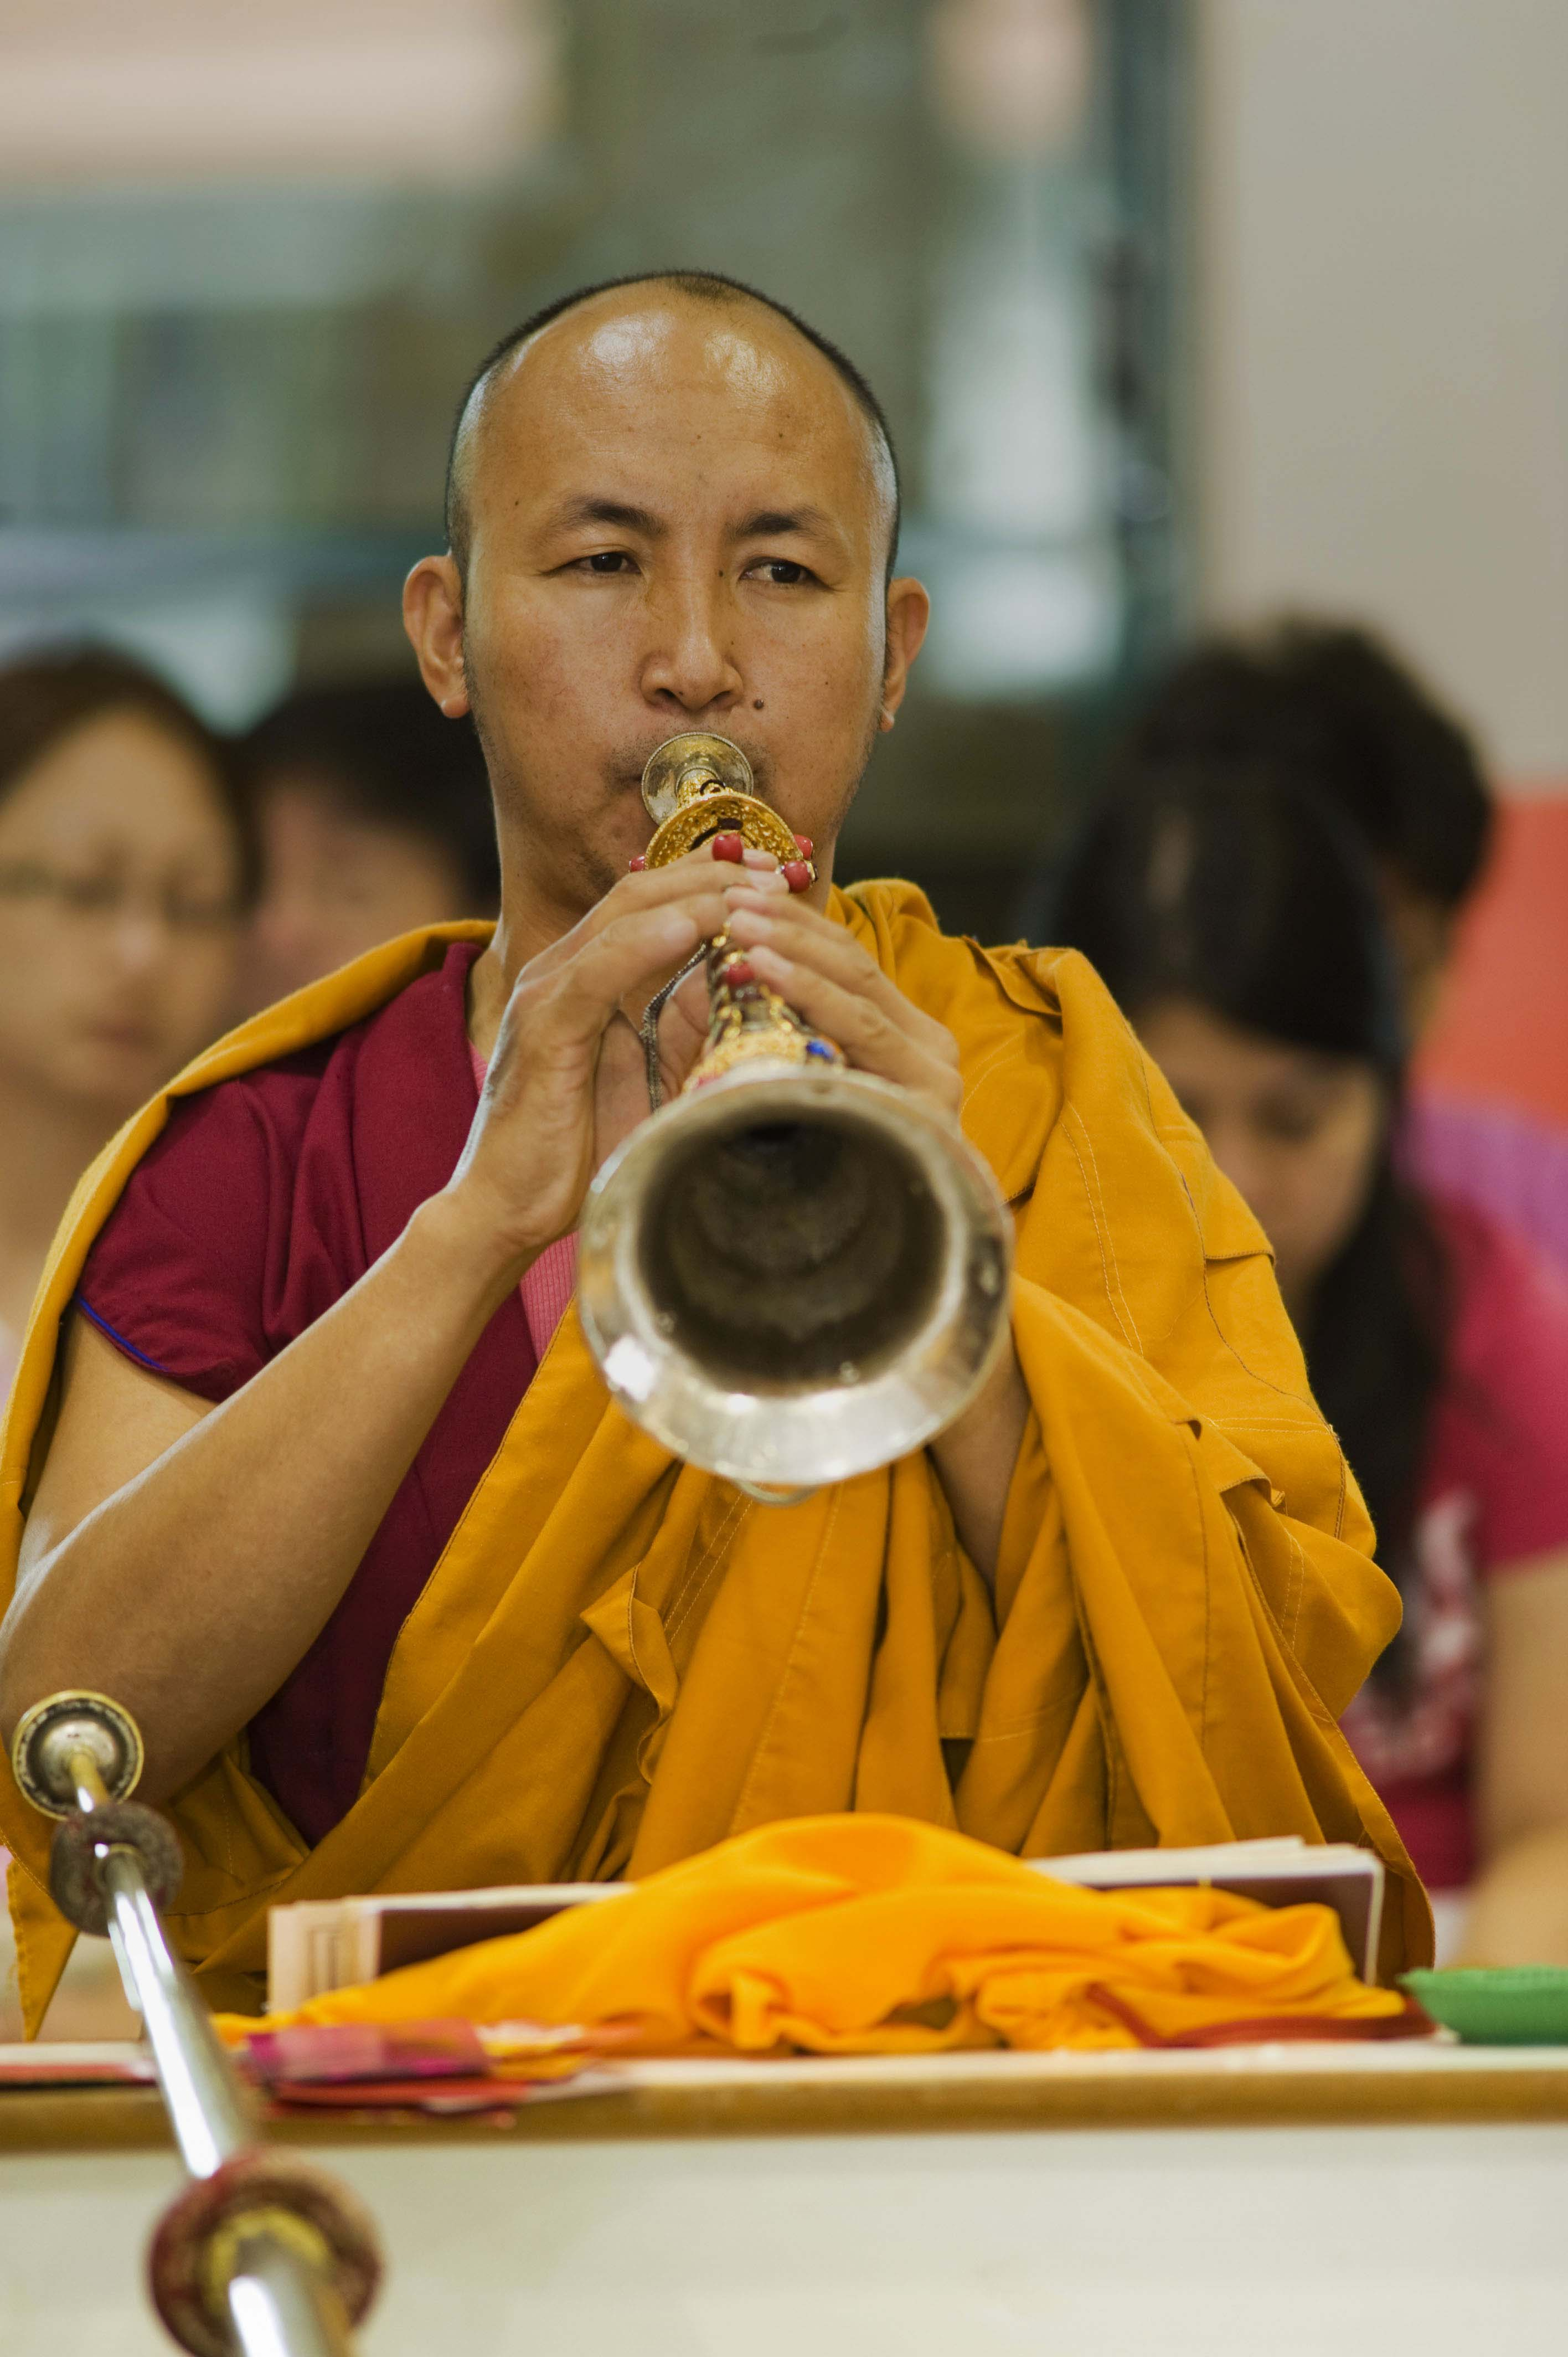 A Tibetan Monk practices playing the horn.